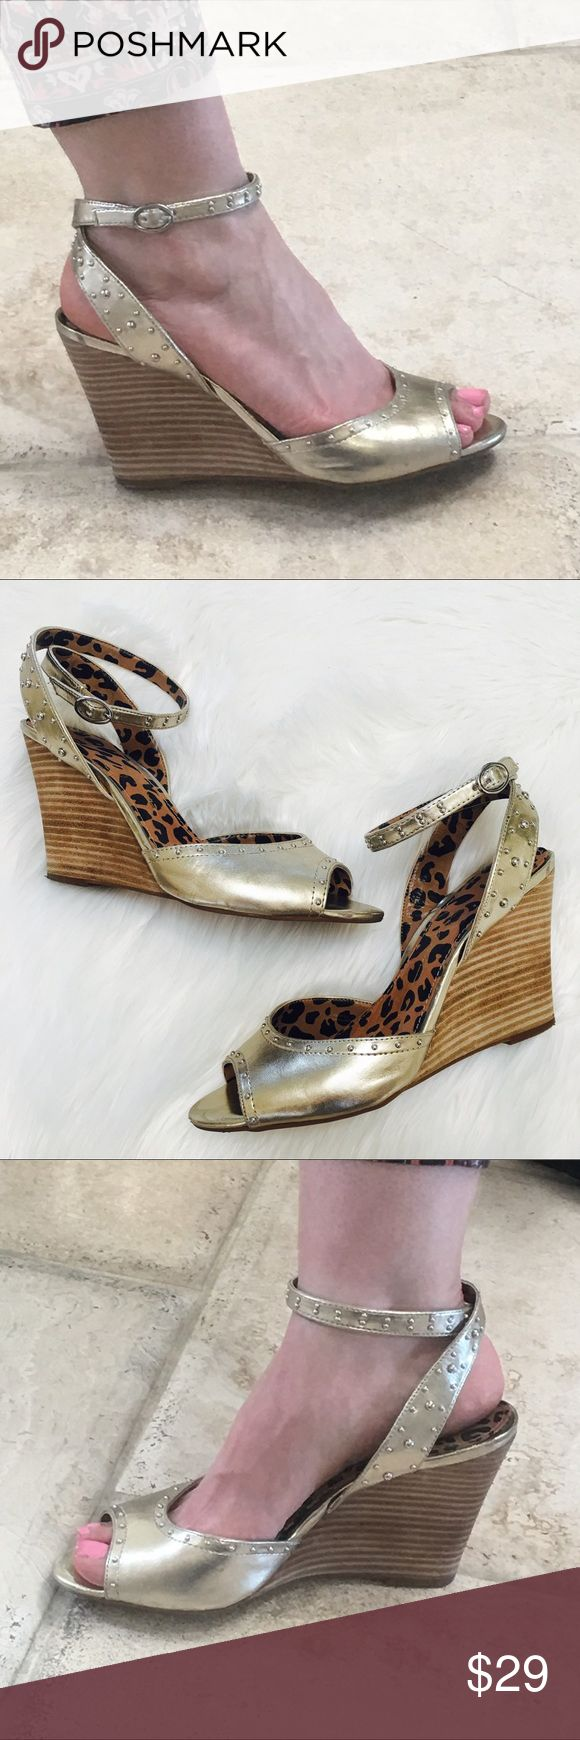 "Jessica Simpson 9 wedge sandal gold wedges heels Jessica Simpson wedge sandals size 9  ankle strap adjustable gold leather with studs accents  leopard lining heel height 4"" pre owned   20% on bundles of 4 💋 no trades Jessica Simpson Shoes Wedges"